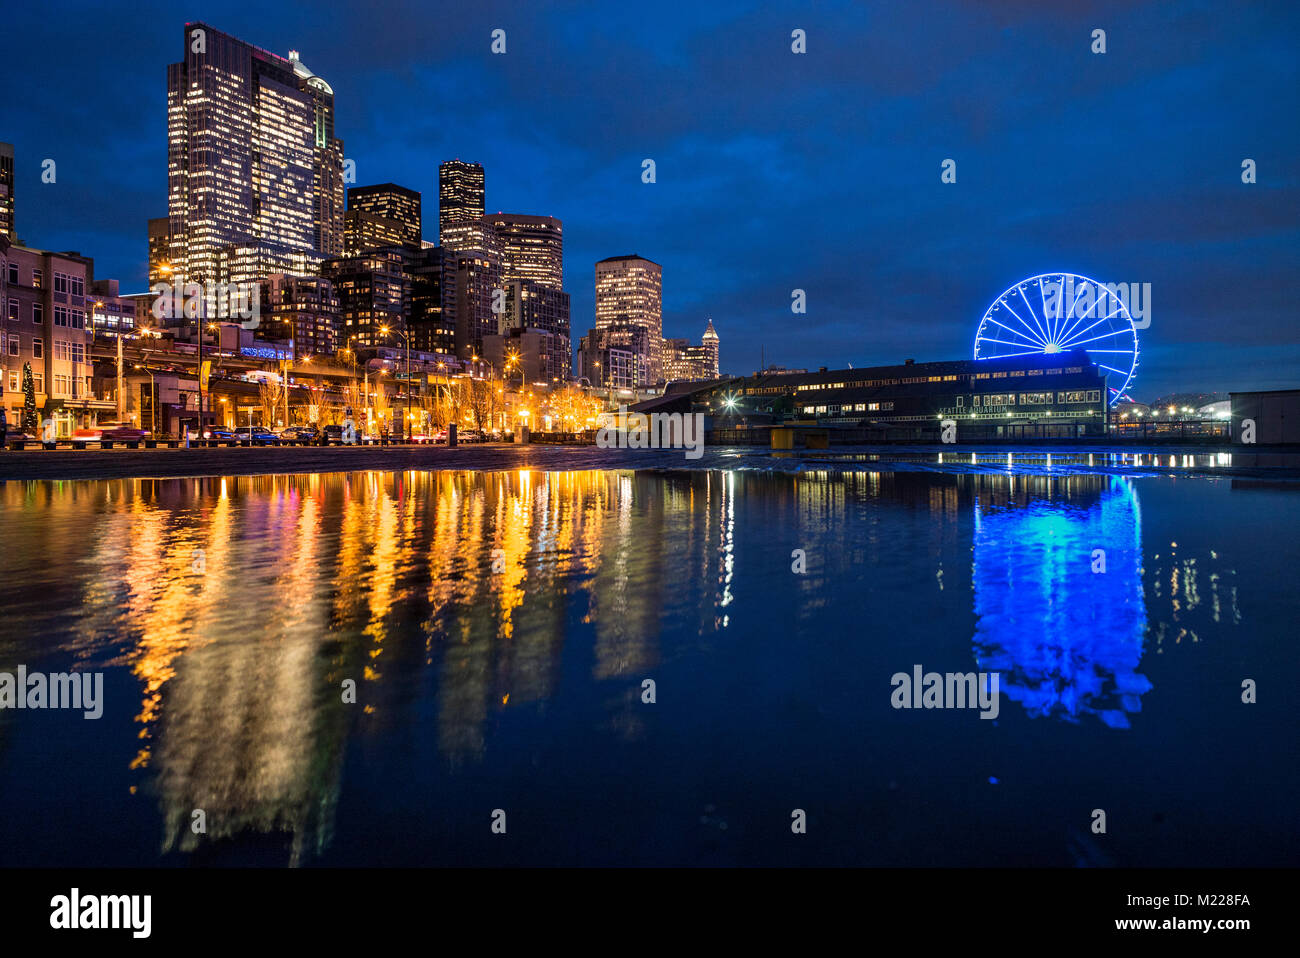 Big Wheel and skyline reflected in puddle of water, Seattle, Washington, USA - Stock Image